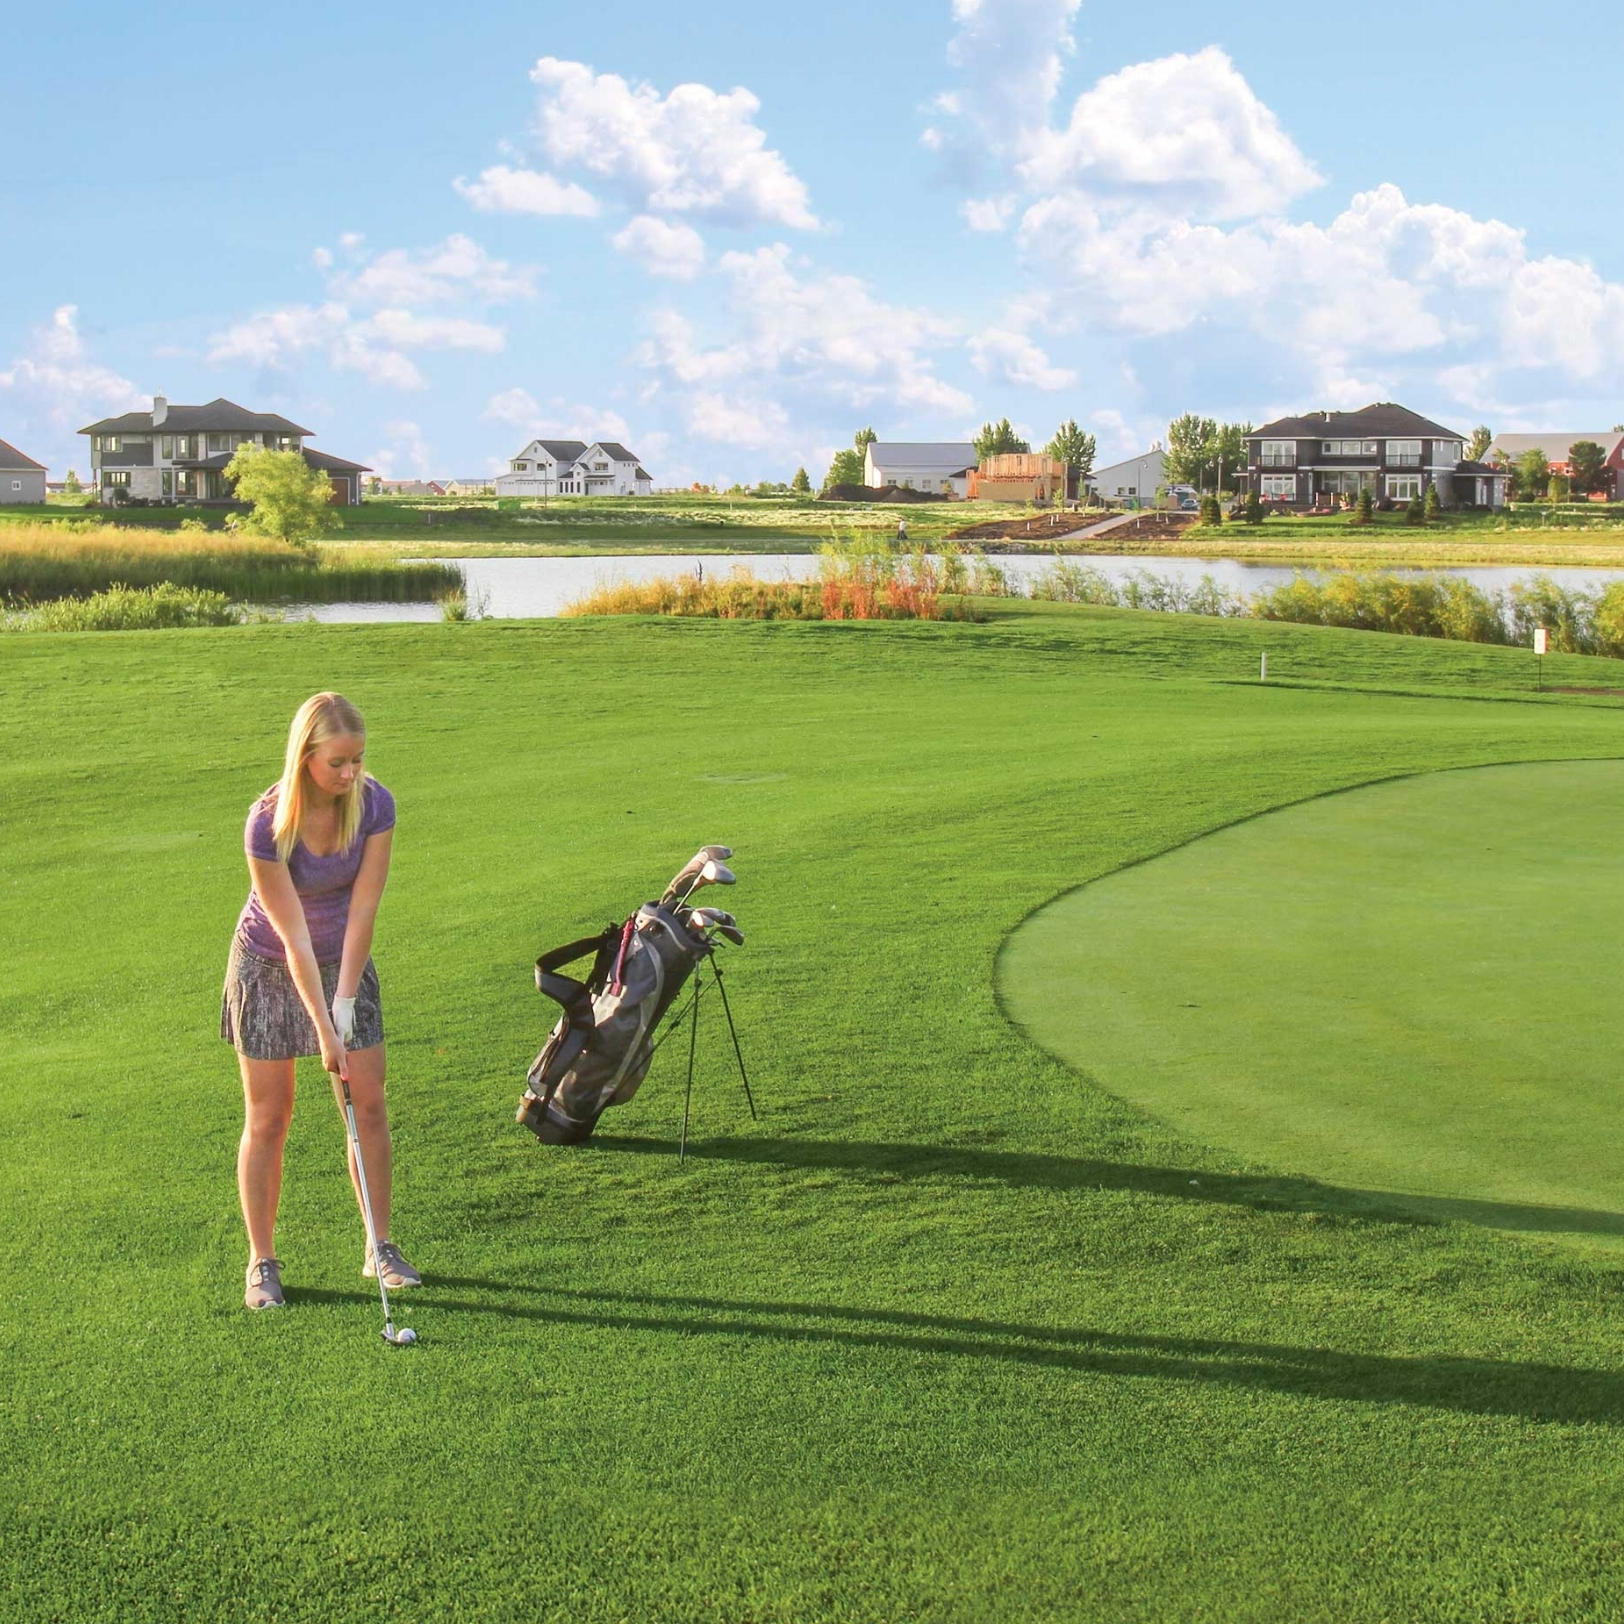 Osgood Golf Course - Premium lots with pond and golf course views.